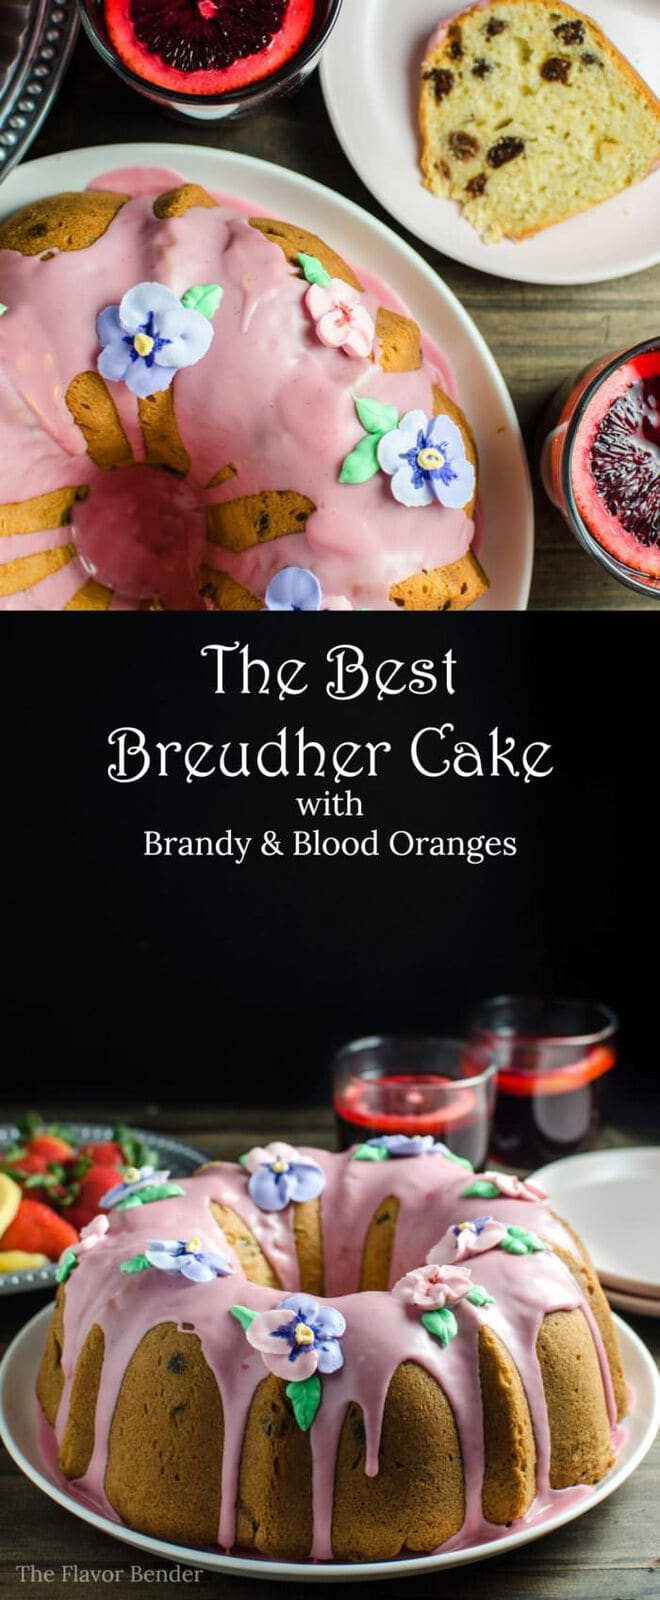 Sri Lankan Breudher Cake with a Blood Orange glaze- a sweet yeasted cake that is PERFECT for Celebrating Easter! A touch of sweetness, buttery and rich yeasted cake studded with raisins, from my childhood, with an extra dose of brandy and blood orange!